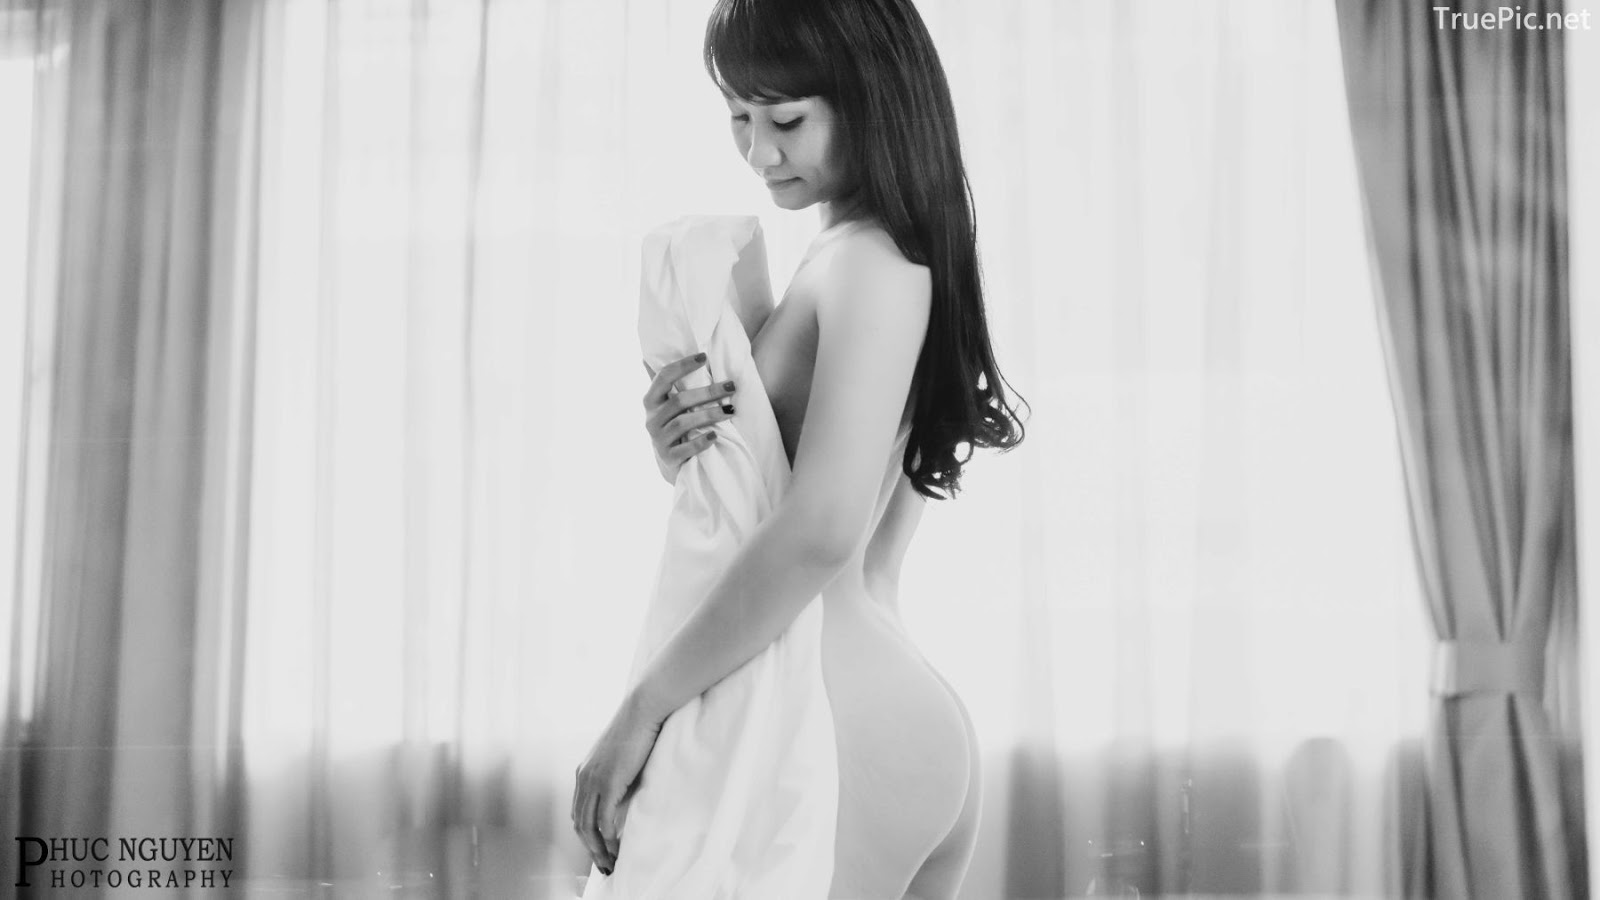 Super hot photos of Vietnamese beauties with lingerie and bikini - Photo by Le Blanc Studio - Part 5 - Picture 9